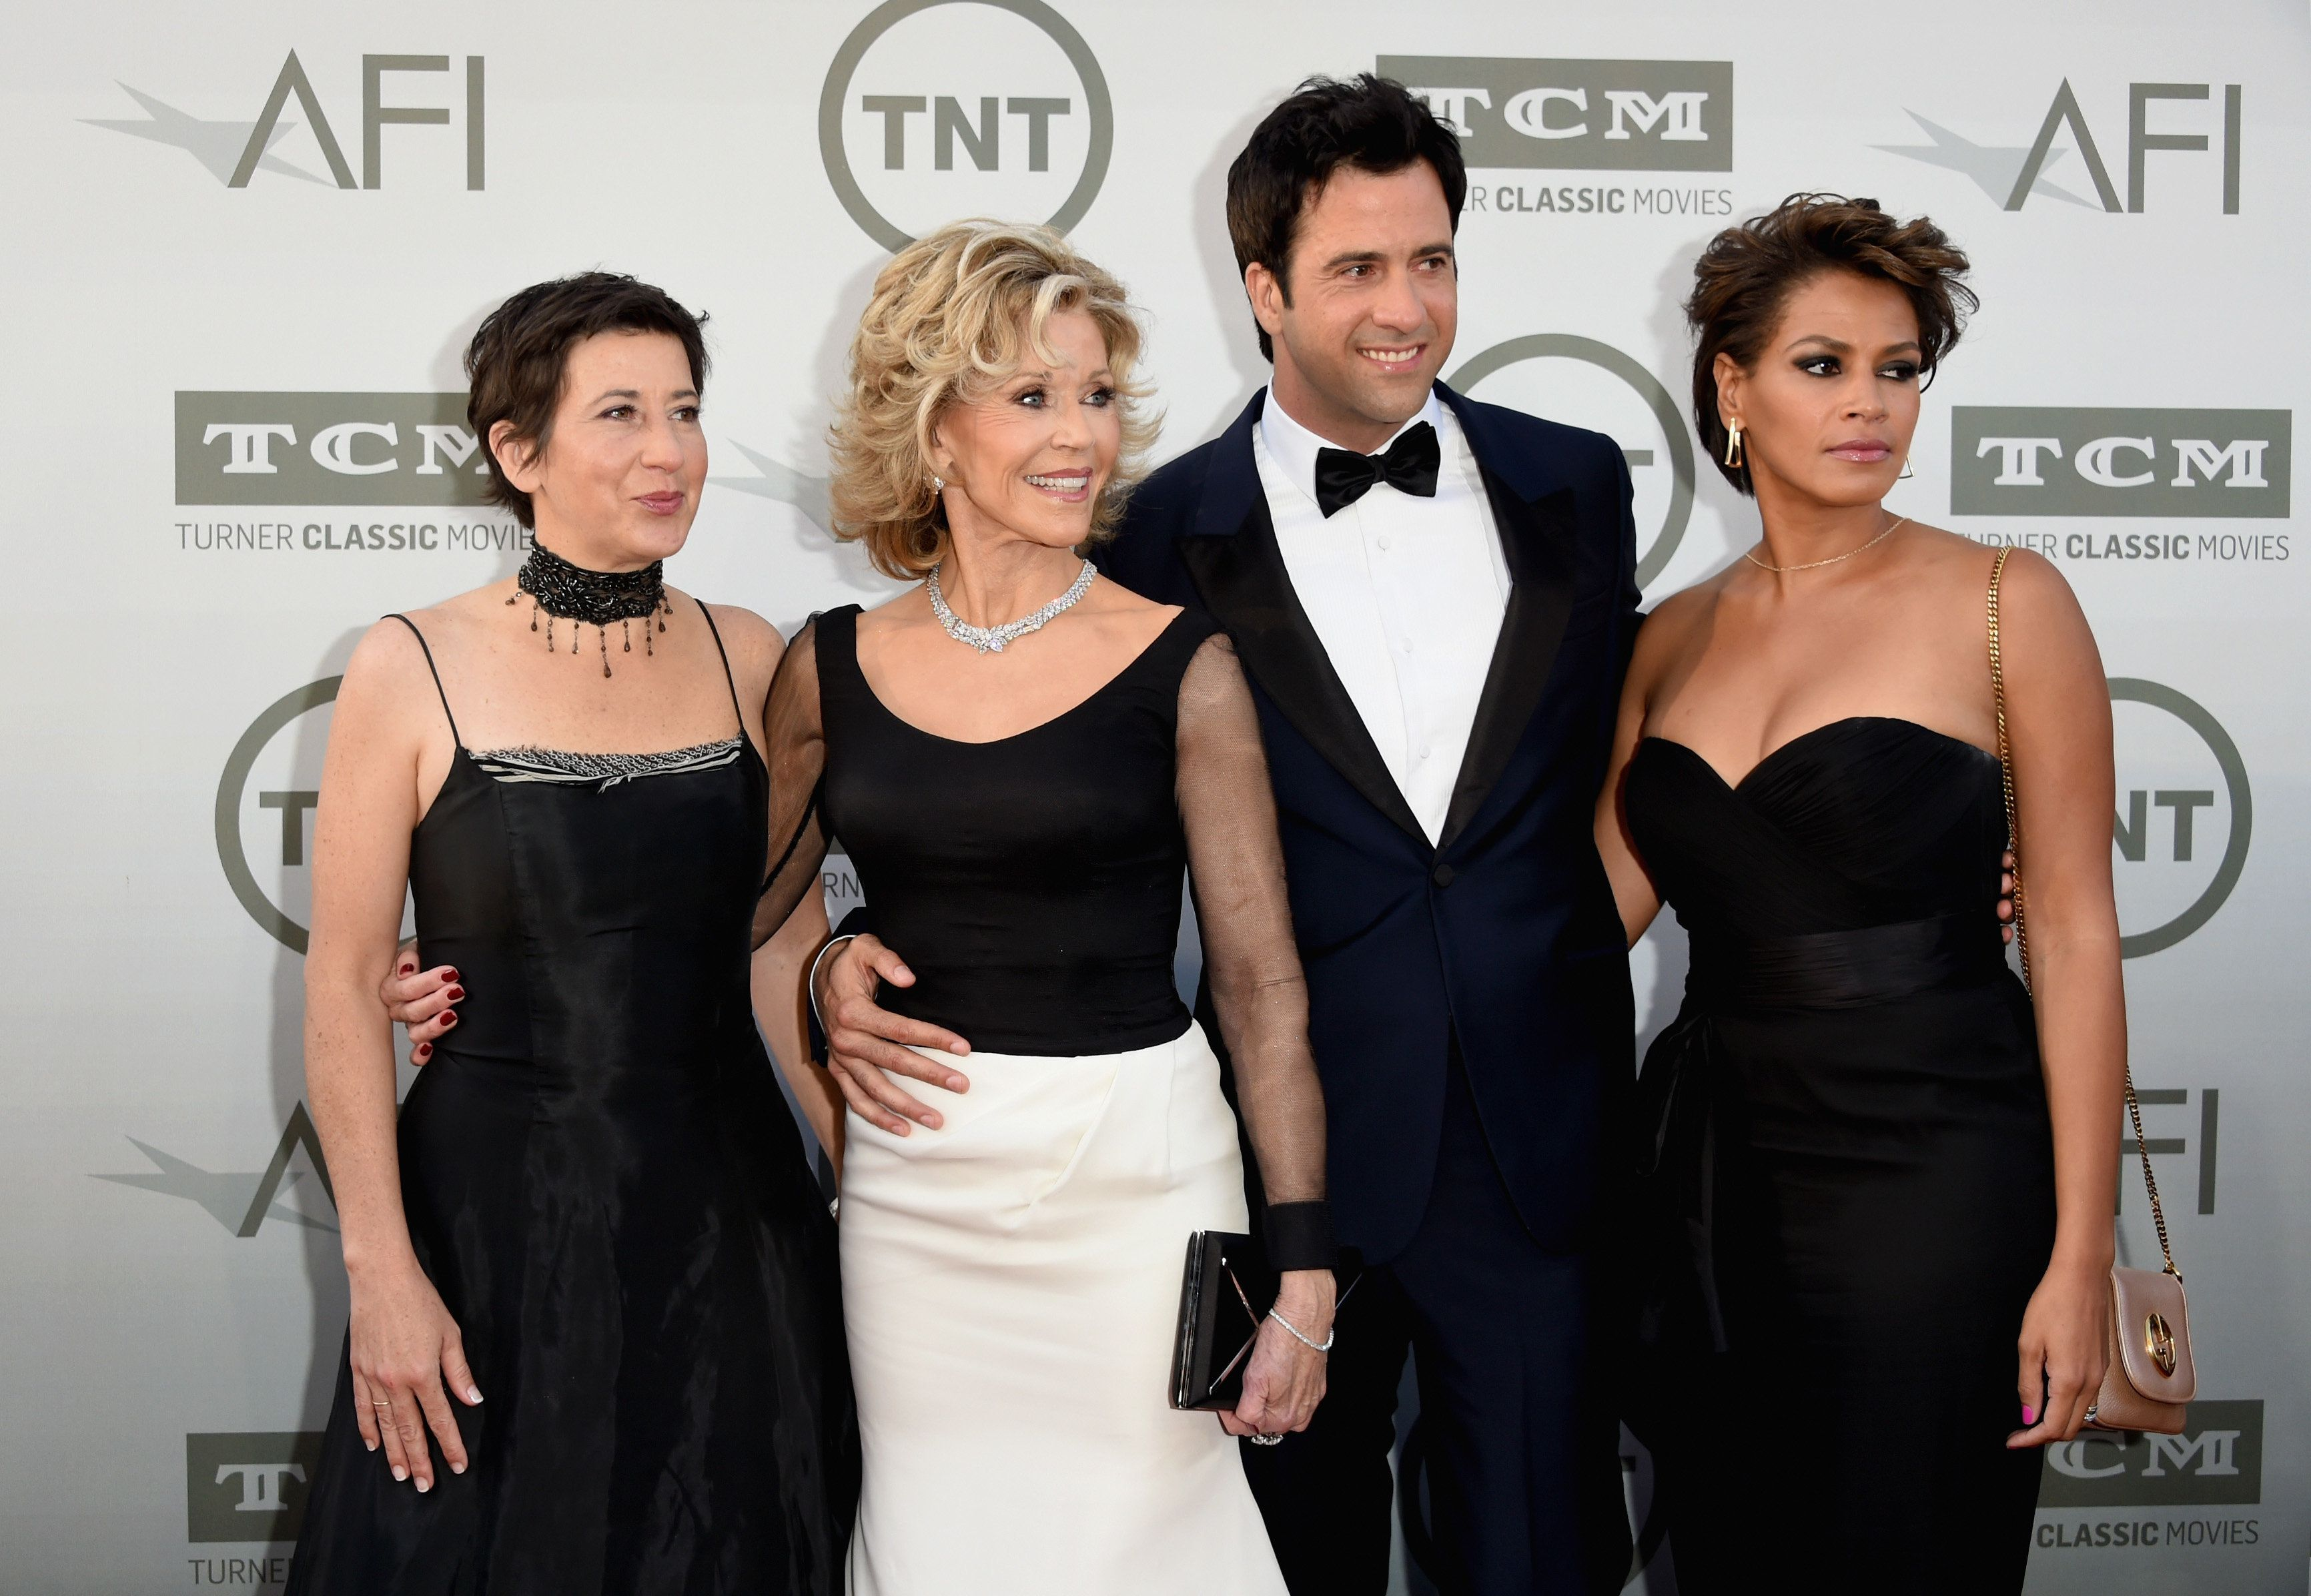 Fonda poses with her daughter Vanessa, son Troy and daughter-in-law Simone in 2014.